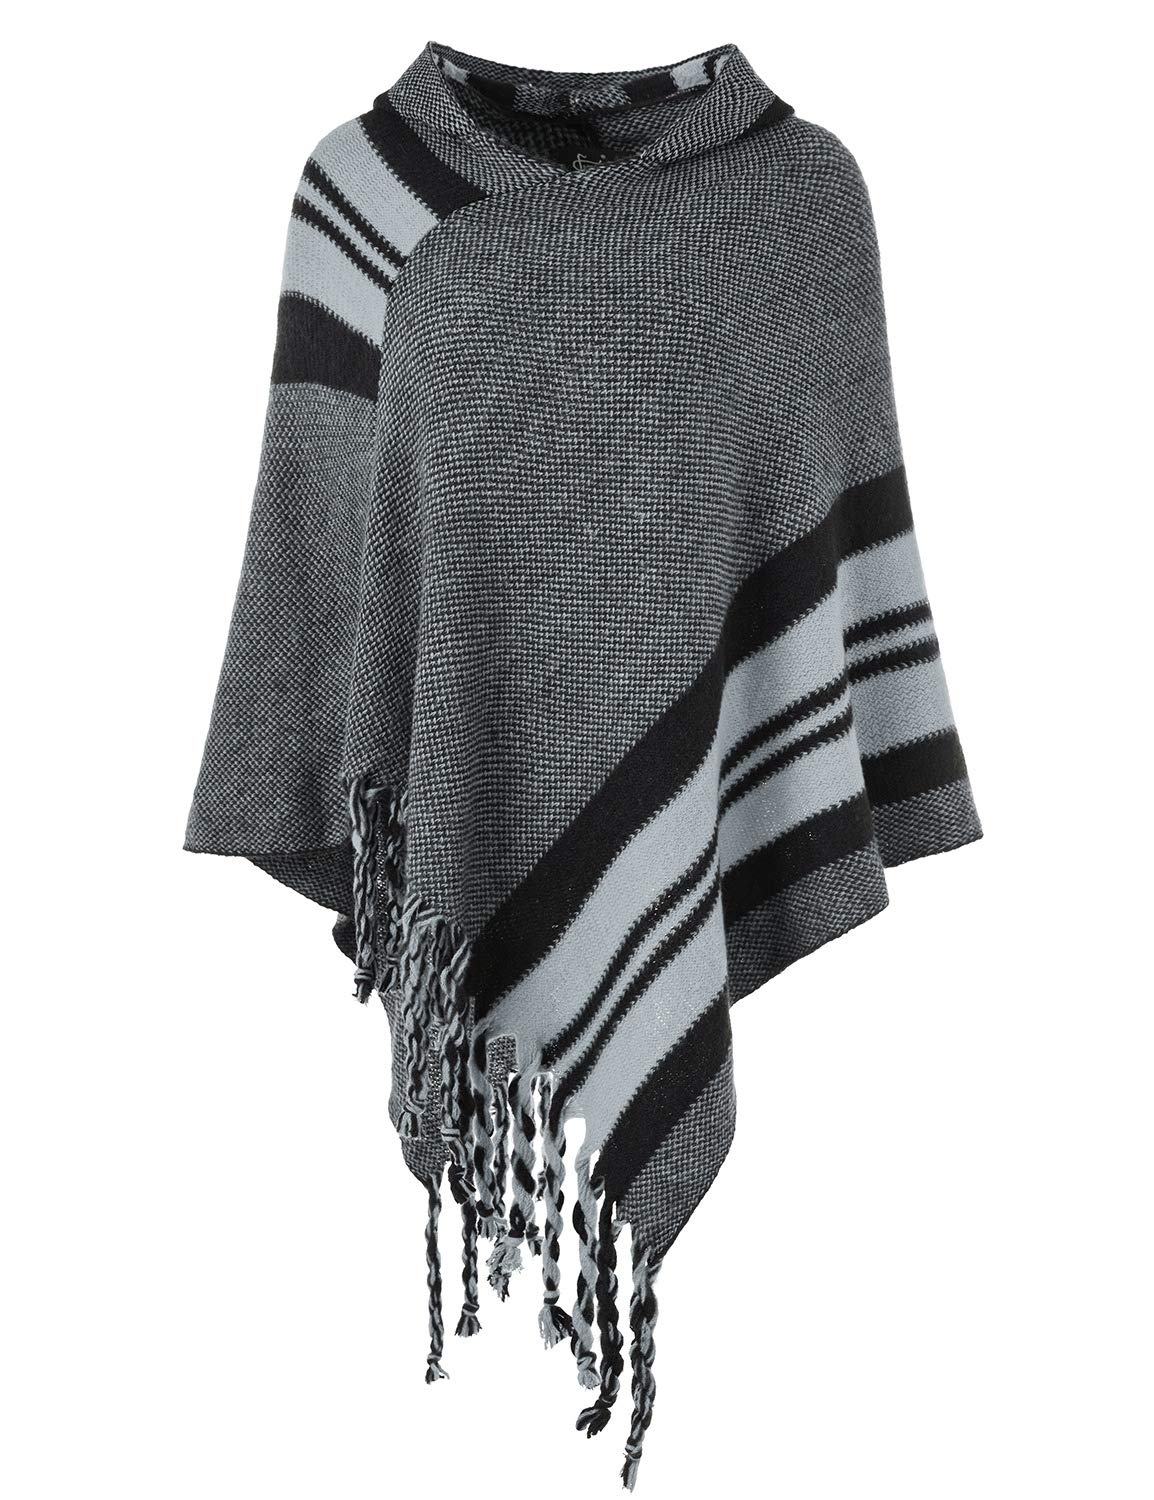 Ferand Women's Hooded Knit Striped Cape Poncho Sweater with Fringes, One Size, Grey